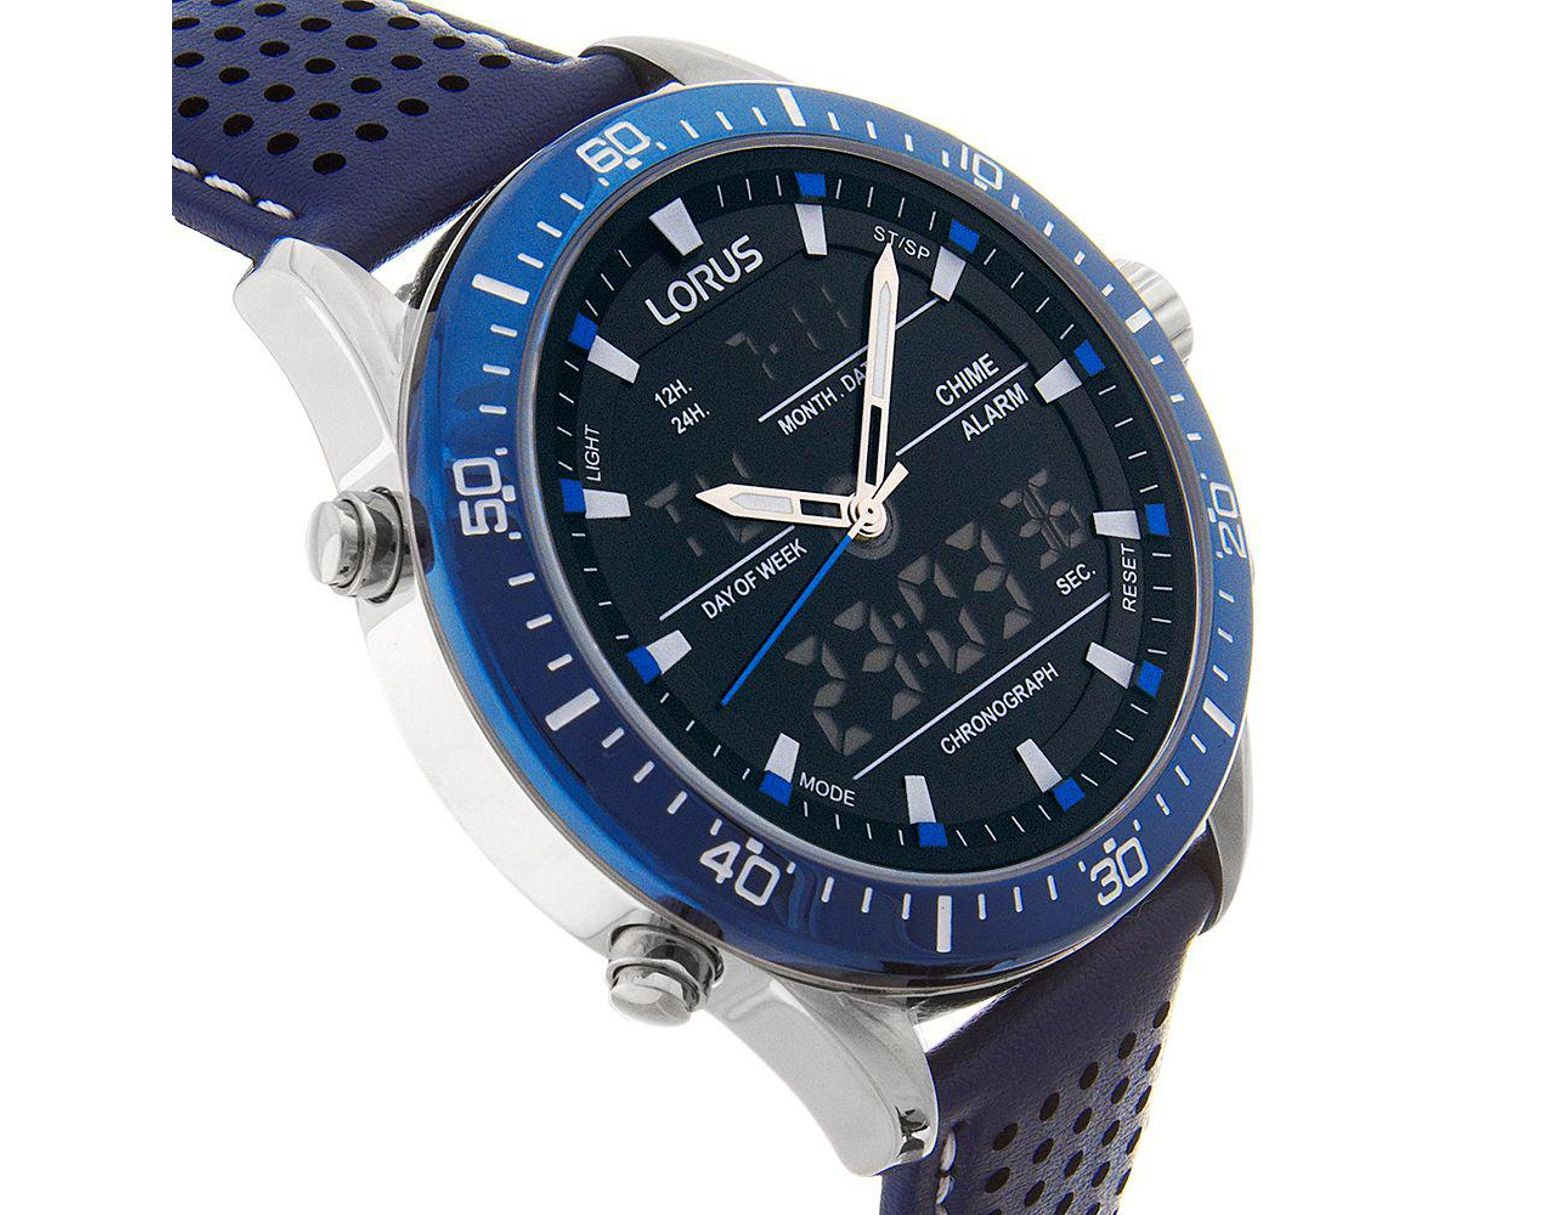 fabf40593 Lorus Rw643ax9 Men's Analogue/digital Chronograph Sports Leather Strap  Watch in Blue for Men - Lyst